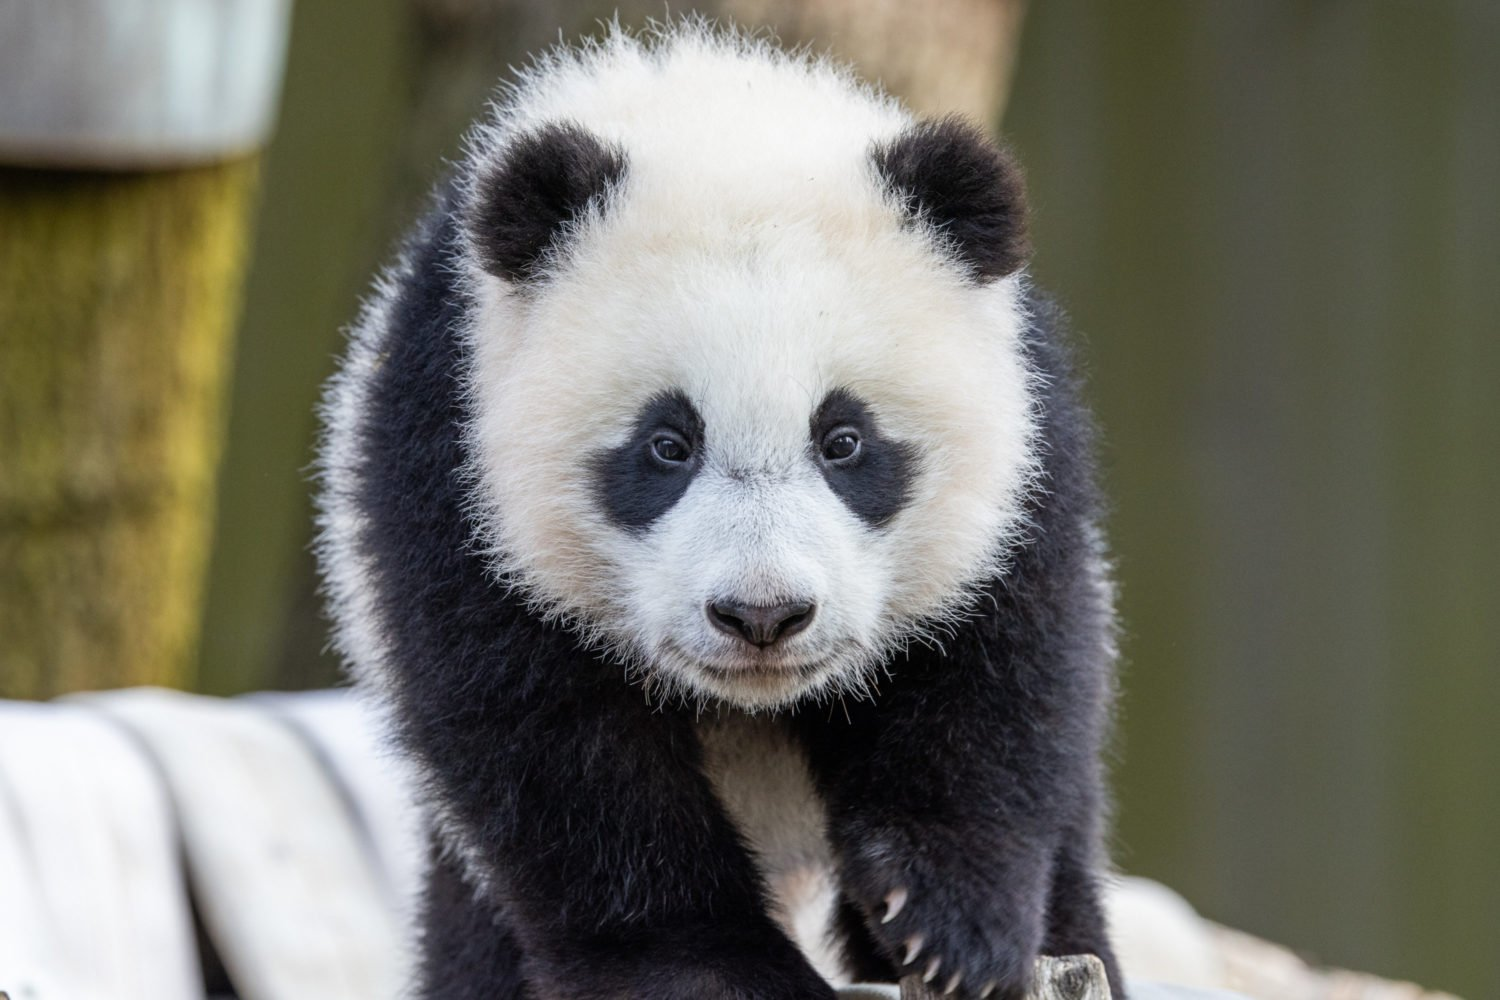 Visitors will soon be able to see baby panda Xiao Qi Ji at the zoo. Photo courtesy of Smithsonian's National Zoo.